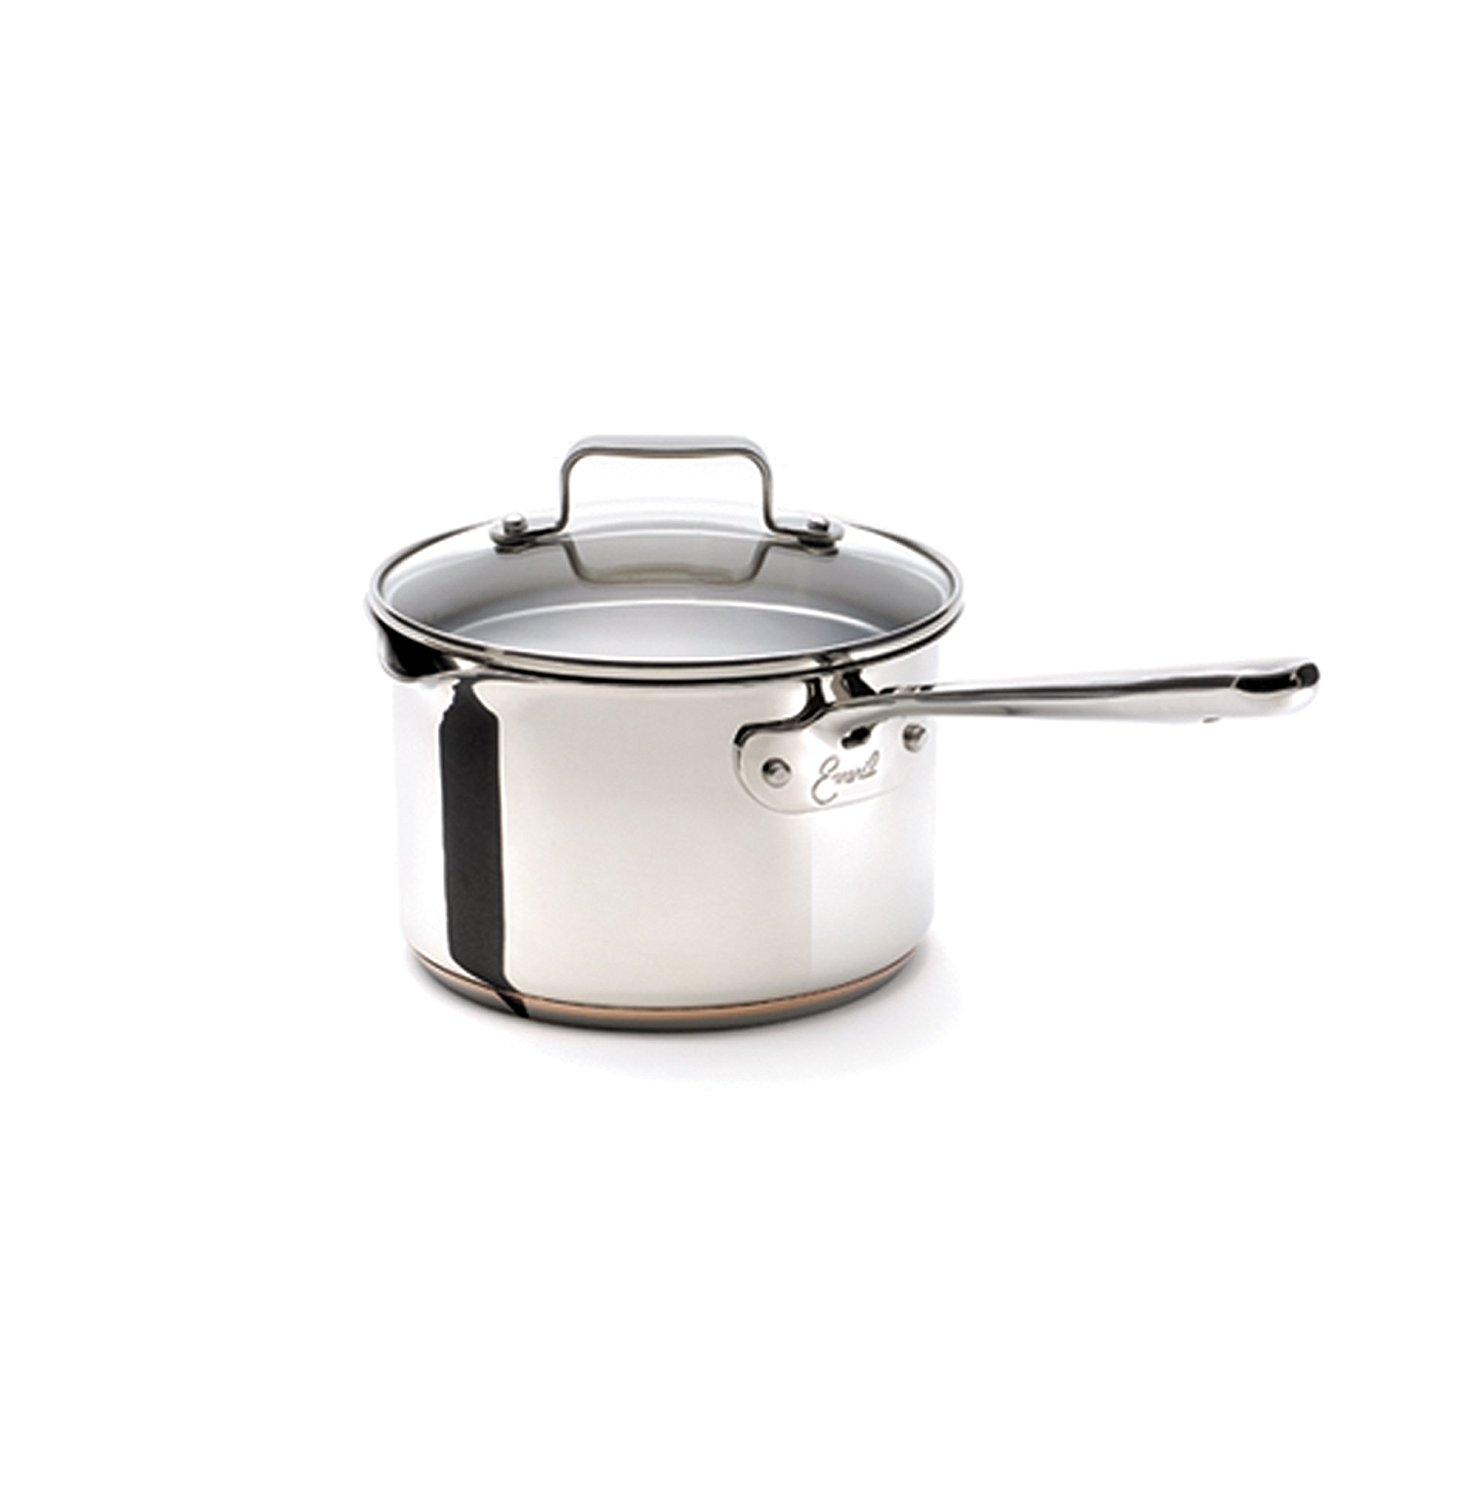 Emerilware Stainless Steel with Copper Dishwasher Safe Sauce Pan with Pour Spouts and Lid Cookware, 3-Quart, Silver